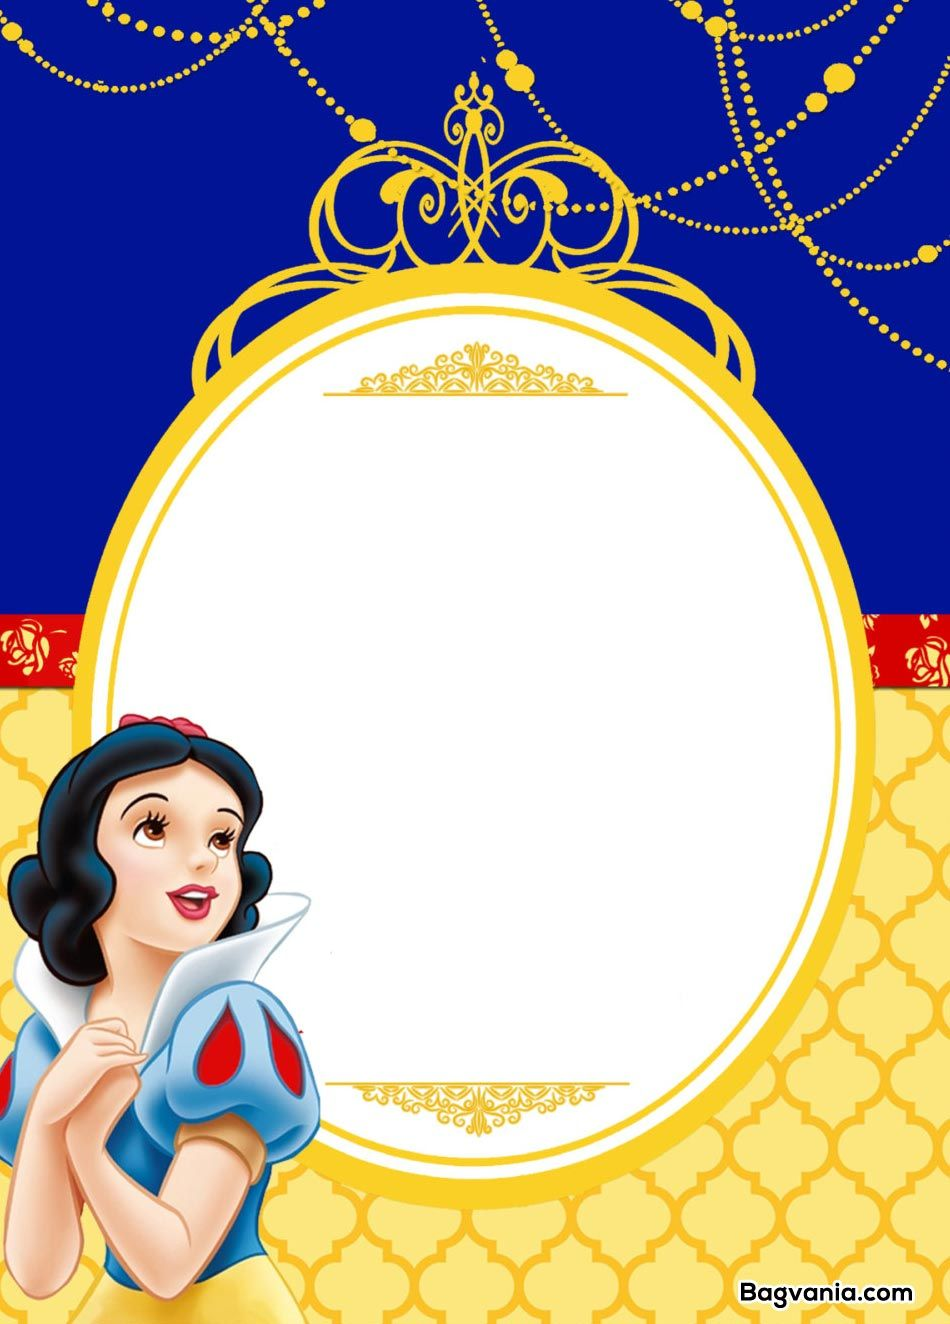 photograph relating to Snow White Invitations Printable named No cost Printable Snow White Birthday Invites Bagvania